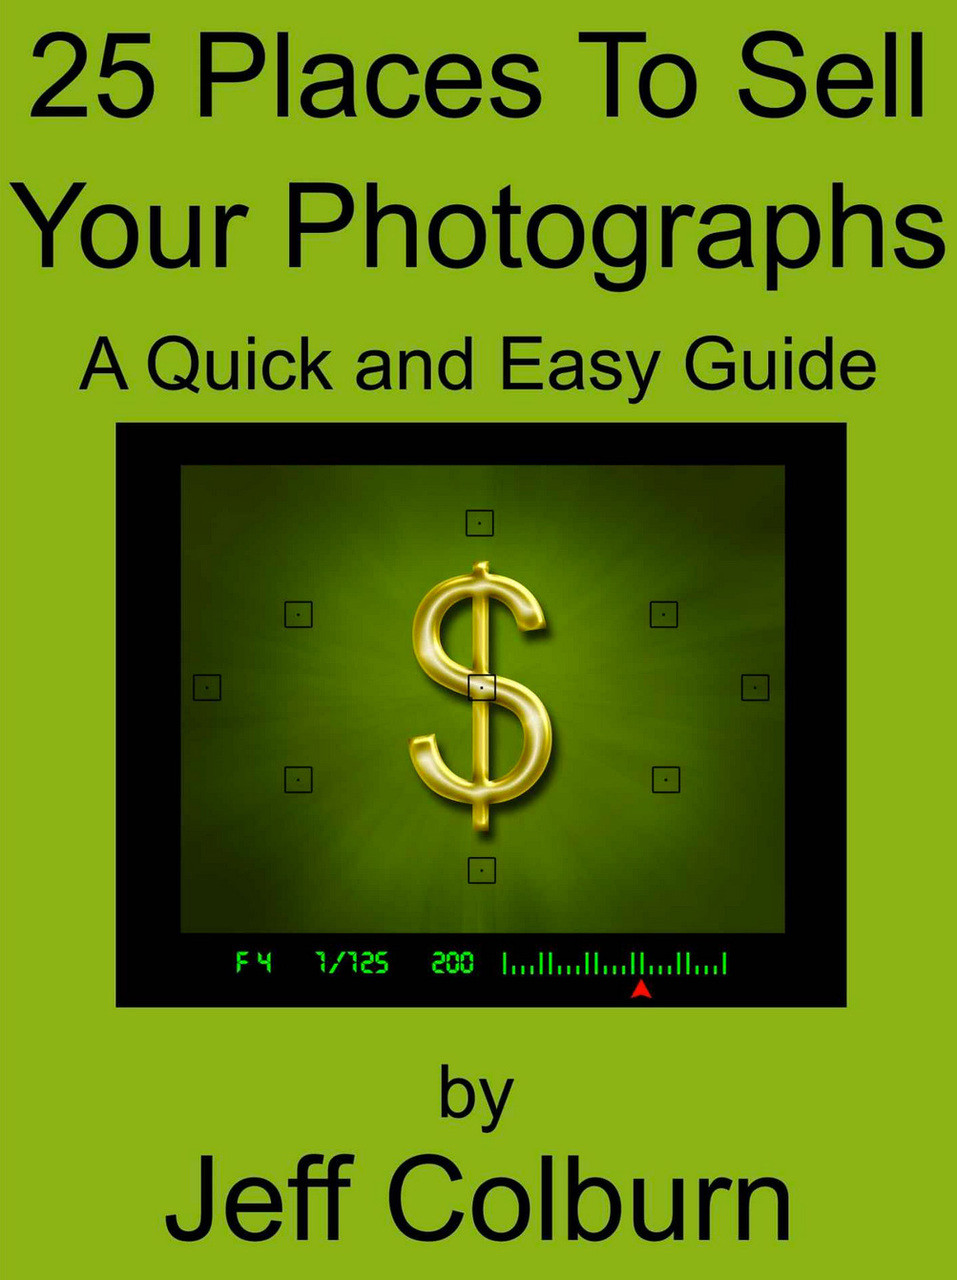 how to sell photography books